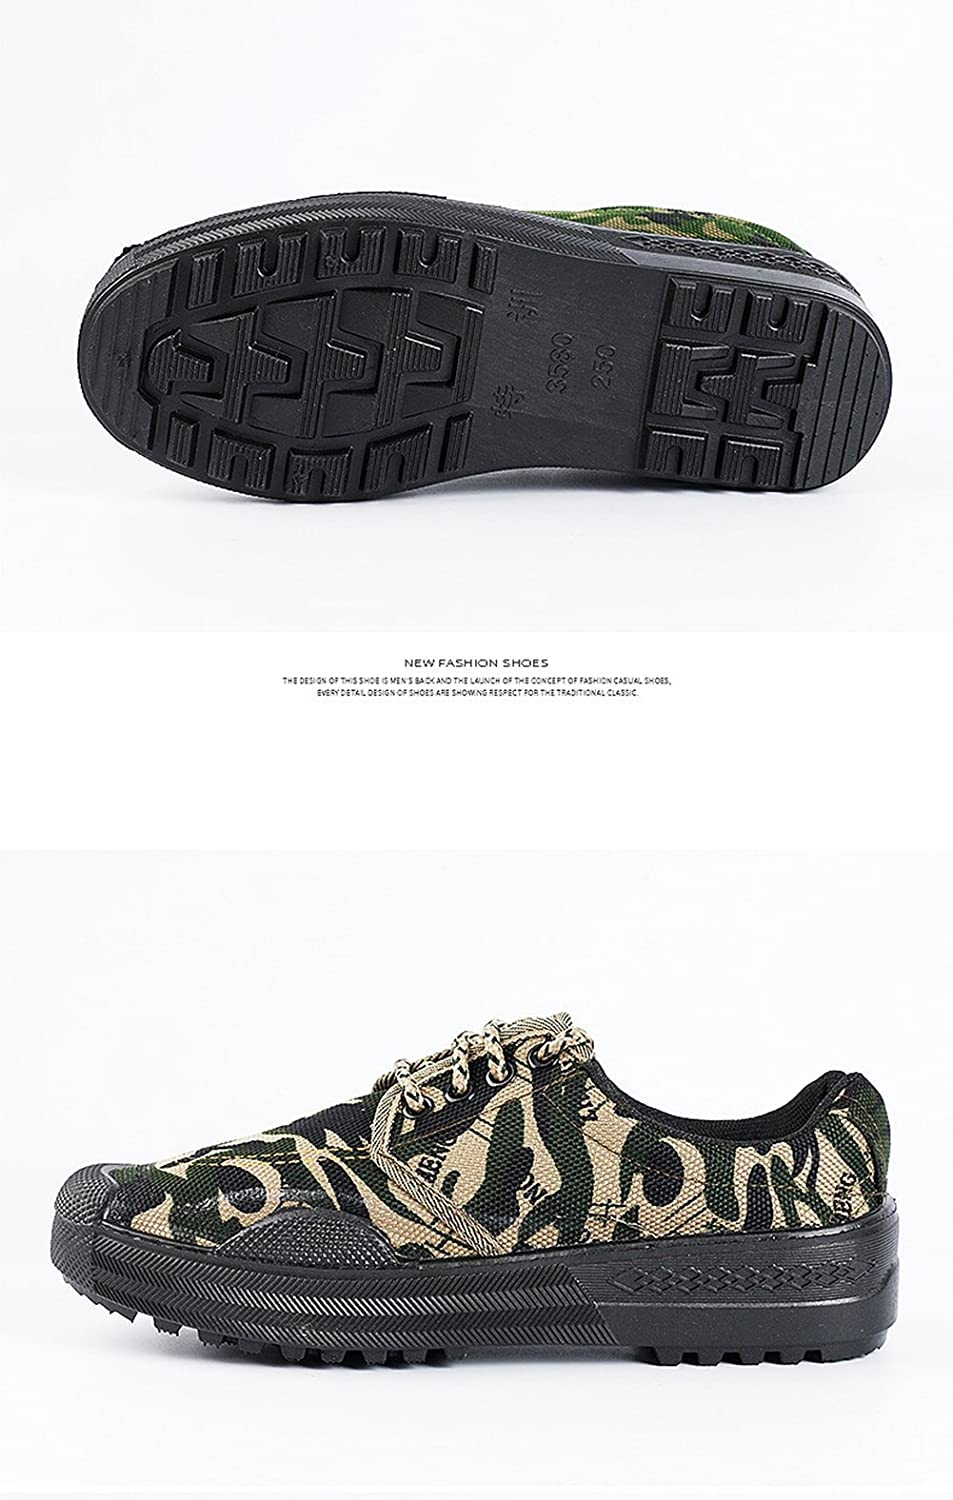 Unisex Men Women Working Safety Low-Cut Camouflage Green Shoes Slip-Resistant Sneaker